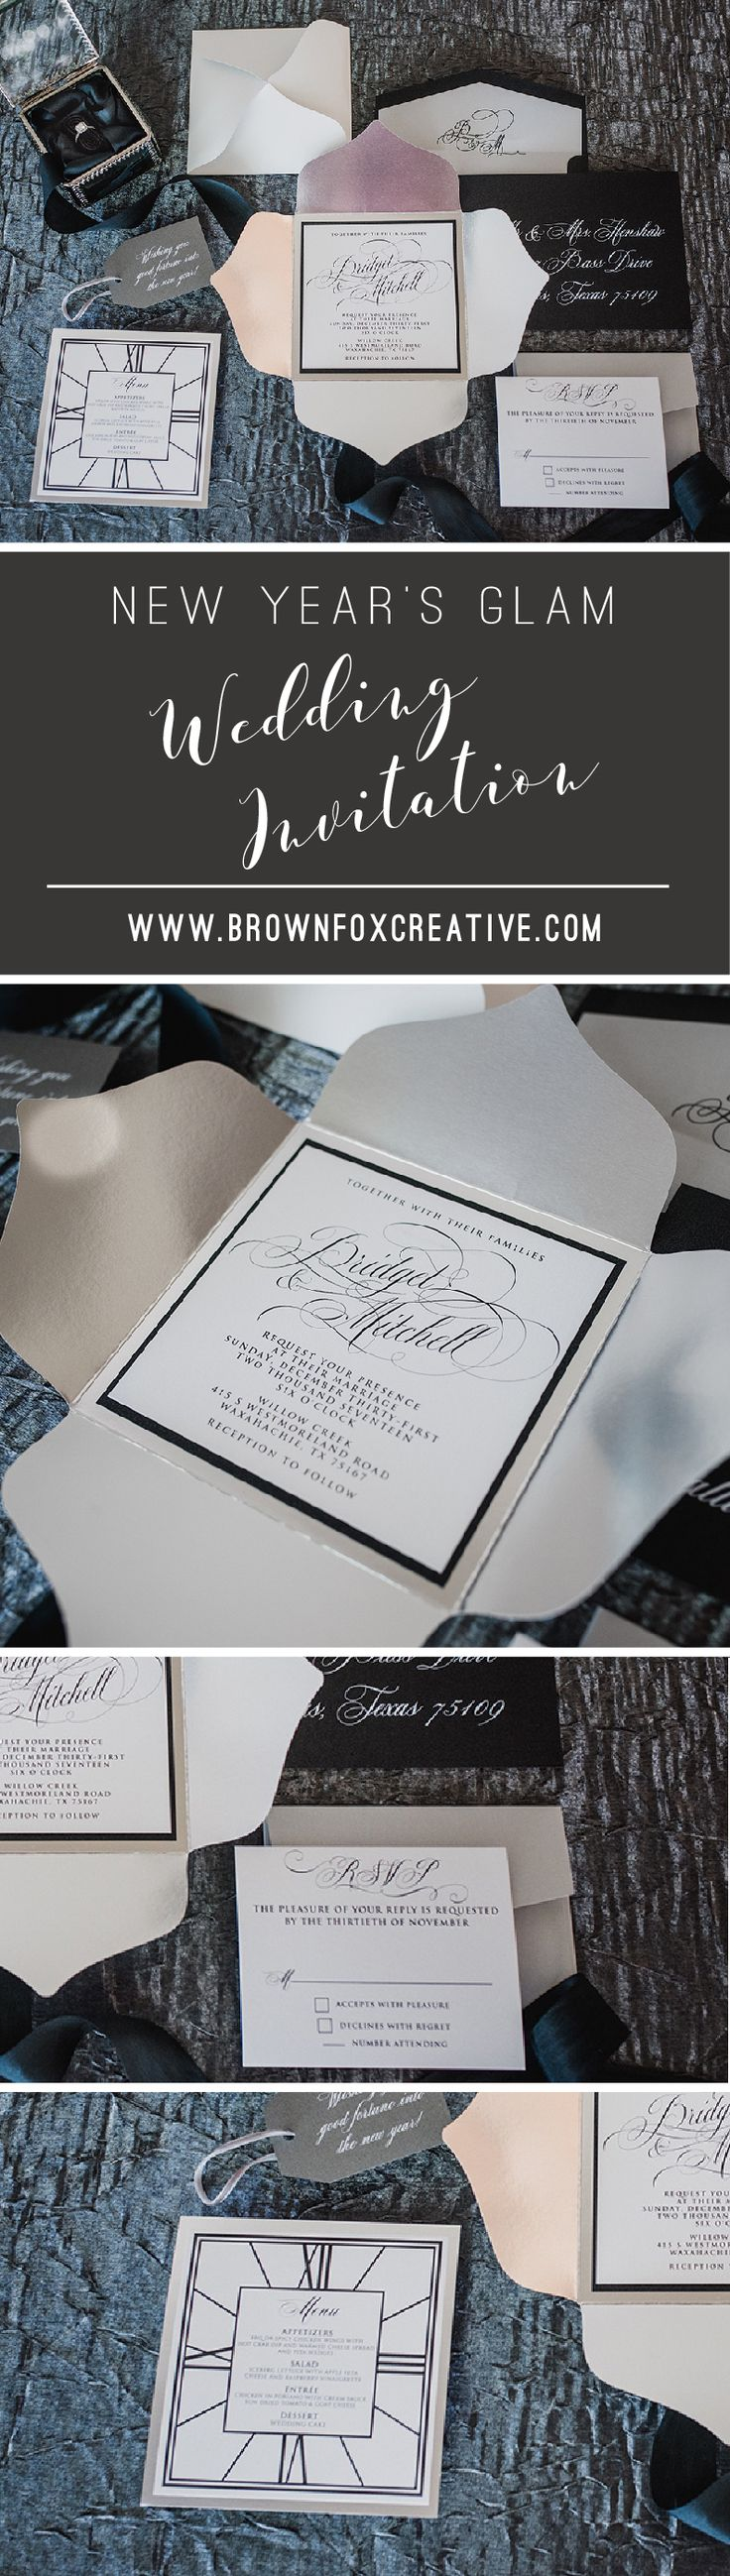 wedding invitationdesigns%0A New Years Black and Silver Petalfold Formal Elegant Wedding Invitation with  RSVP and Envelope Liner